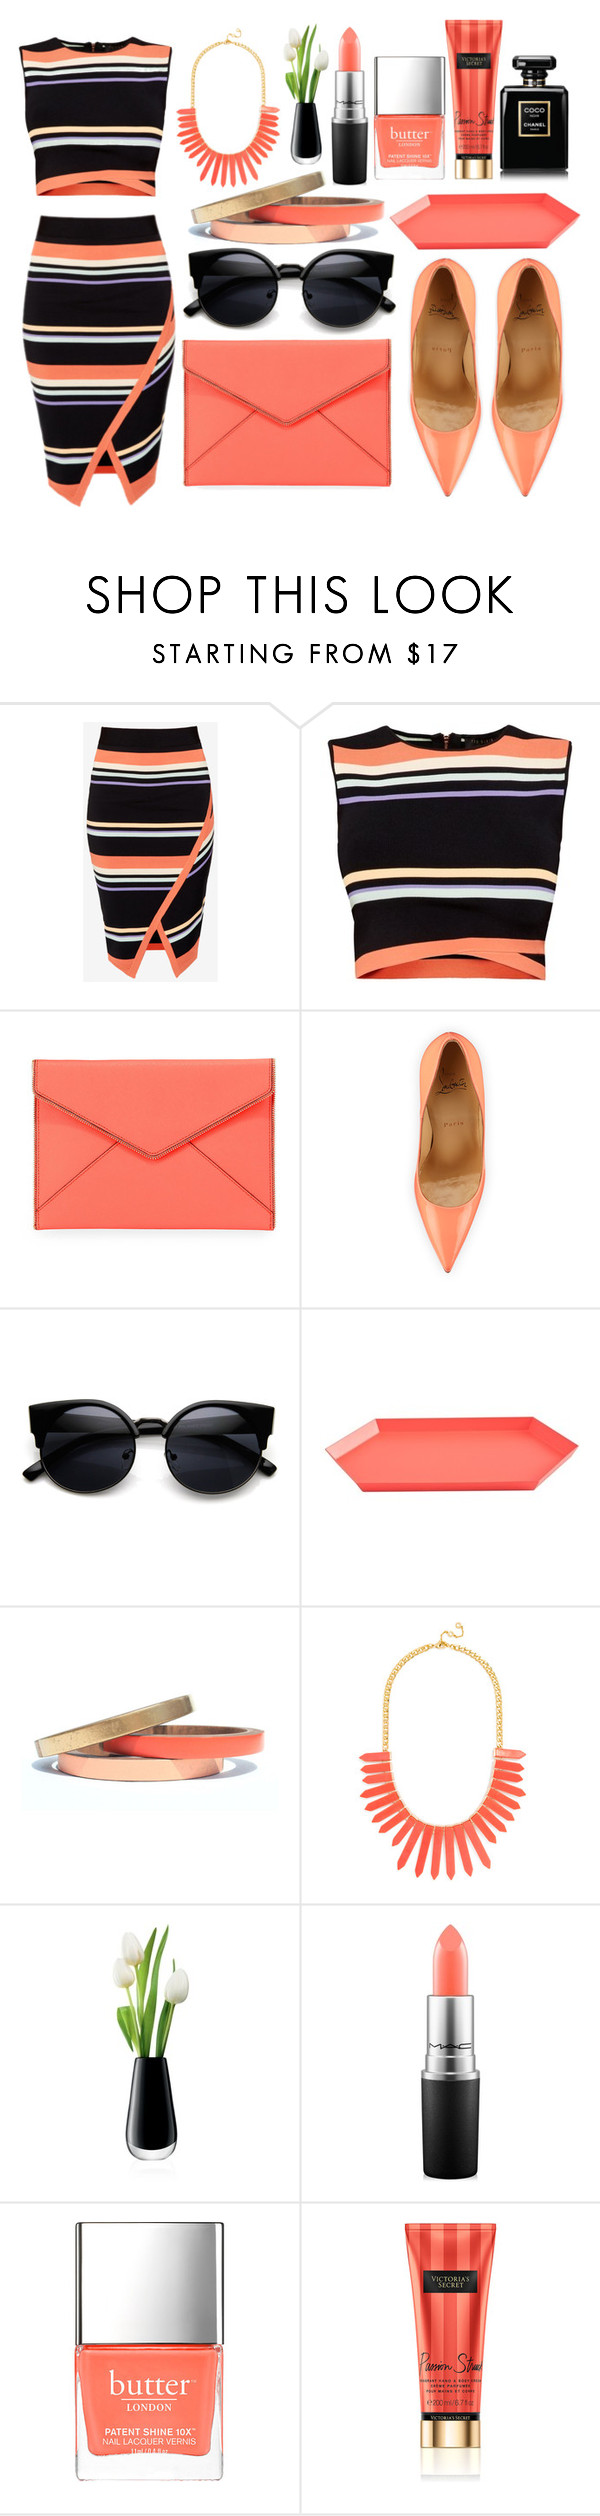 """Untitled #201"" by dzchocolatess ❤ liked on Polyvore featuring Ted Baker, Rebecca Minkoff, Christian Louboutin, HAY, Voz Collective, BaubleBar, LSA International, MAC Cosmetics, Butter London and Chanel"